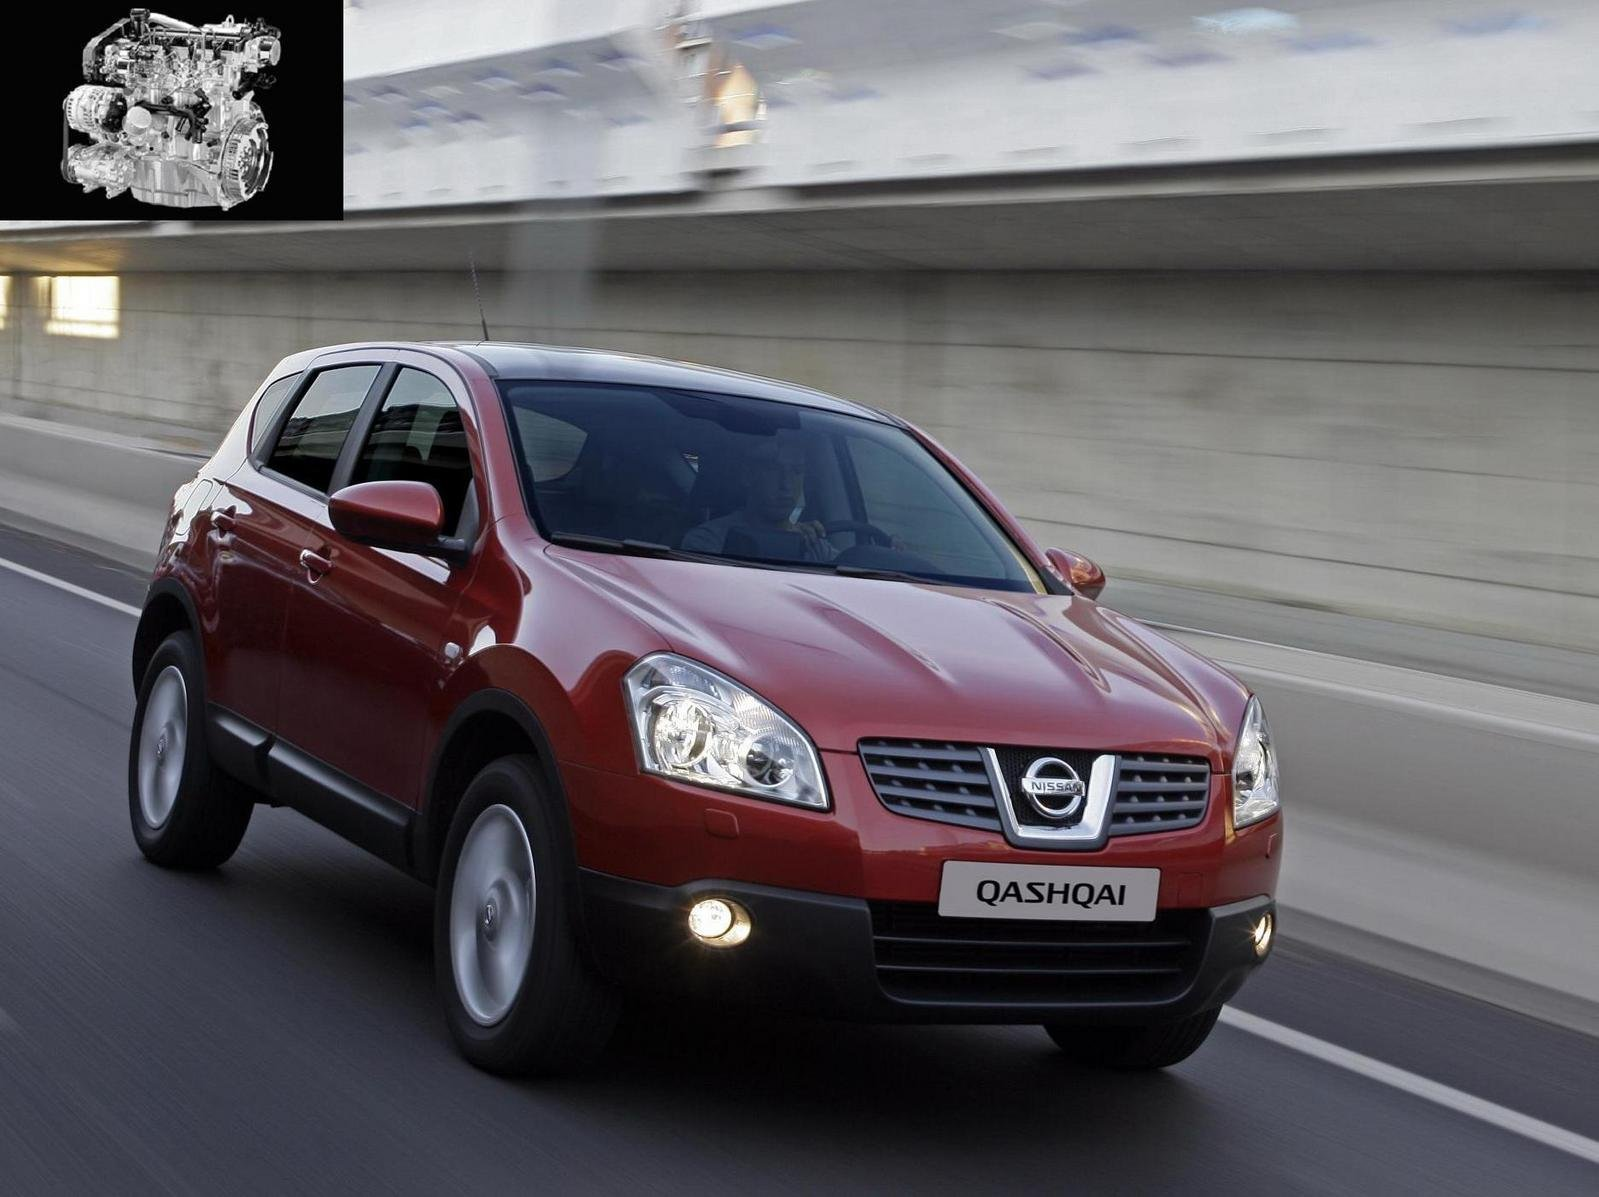 2007 nissan qashqai picture 144606 car review top speed. Black Bedroom Furniture Sets. Home Design Ideas